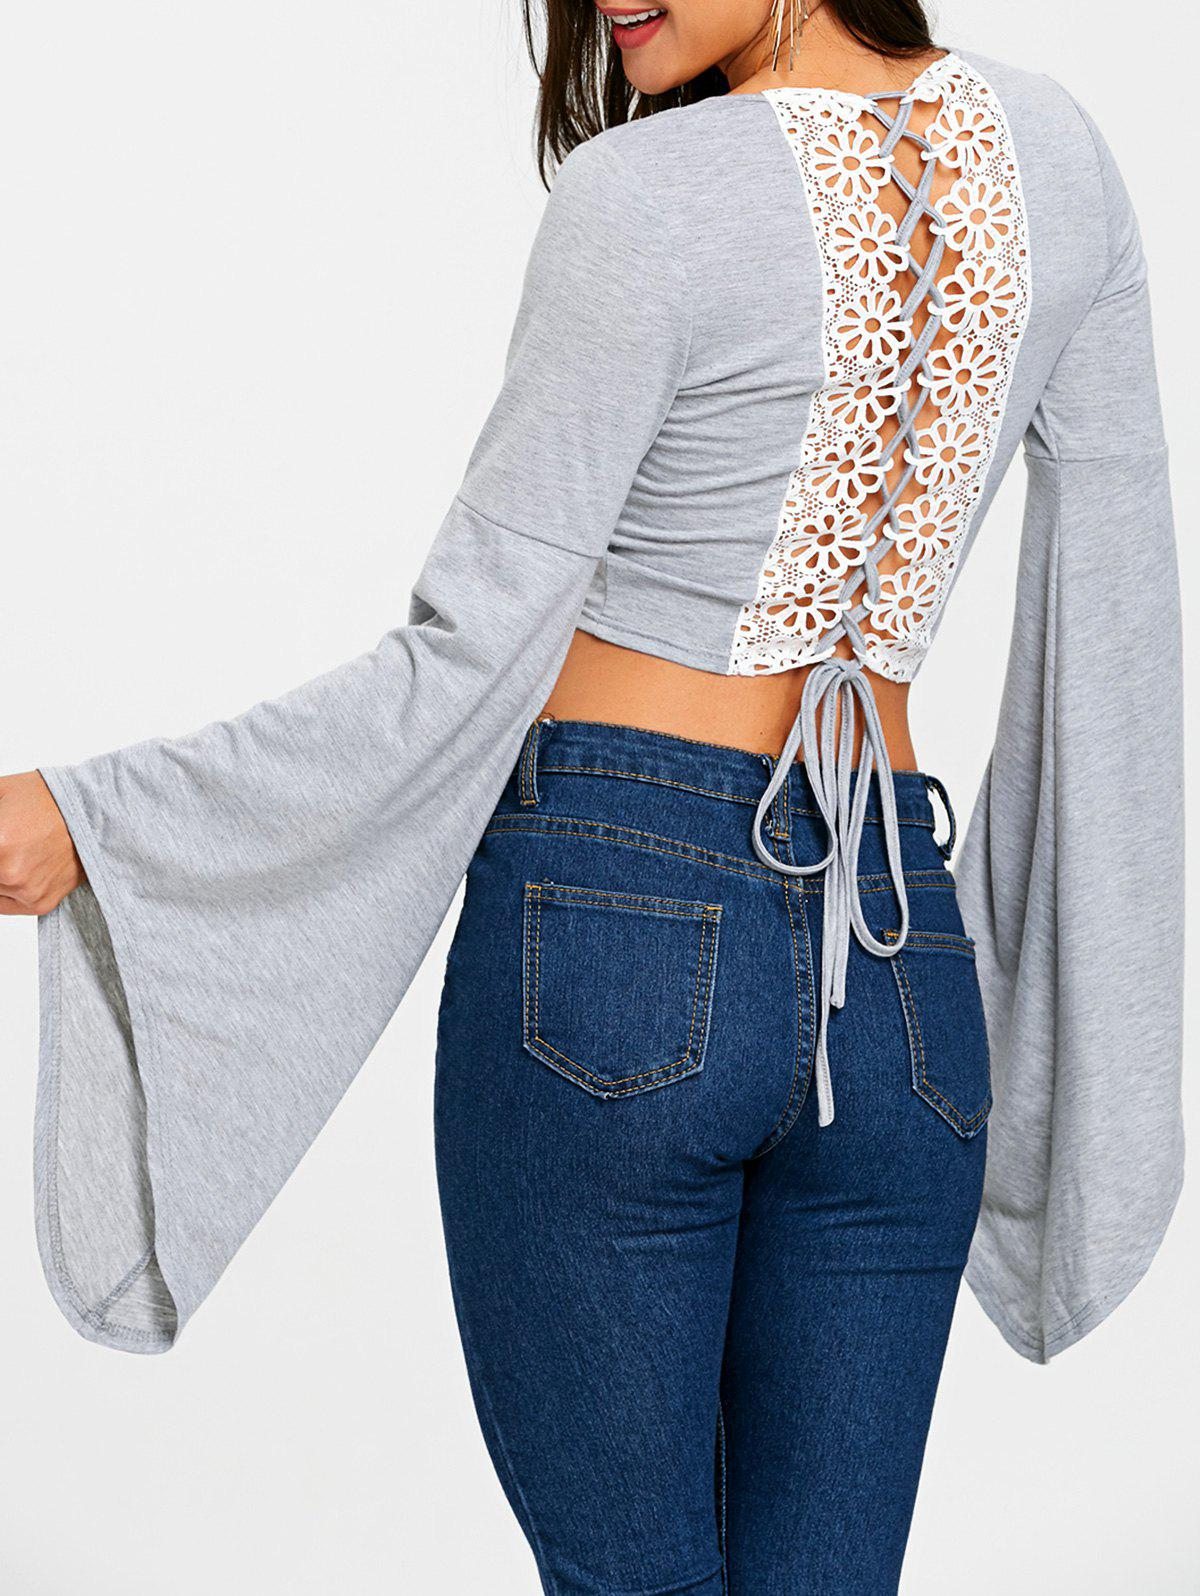 Lace Up Bell Sleeve Crop Top - GRAY M